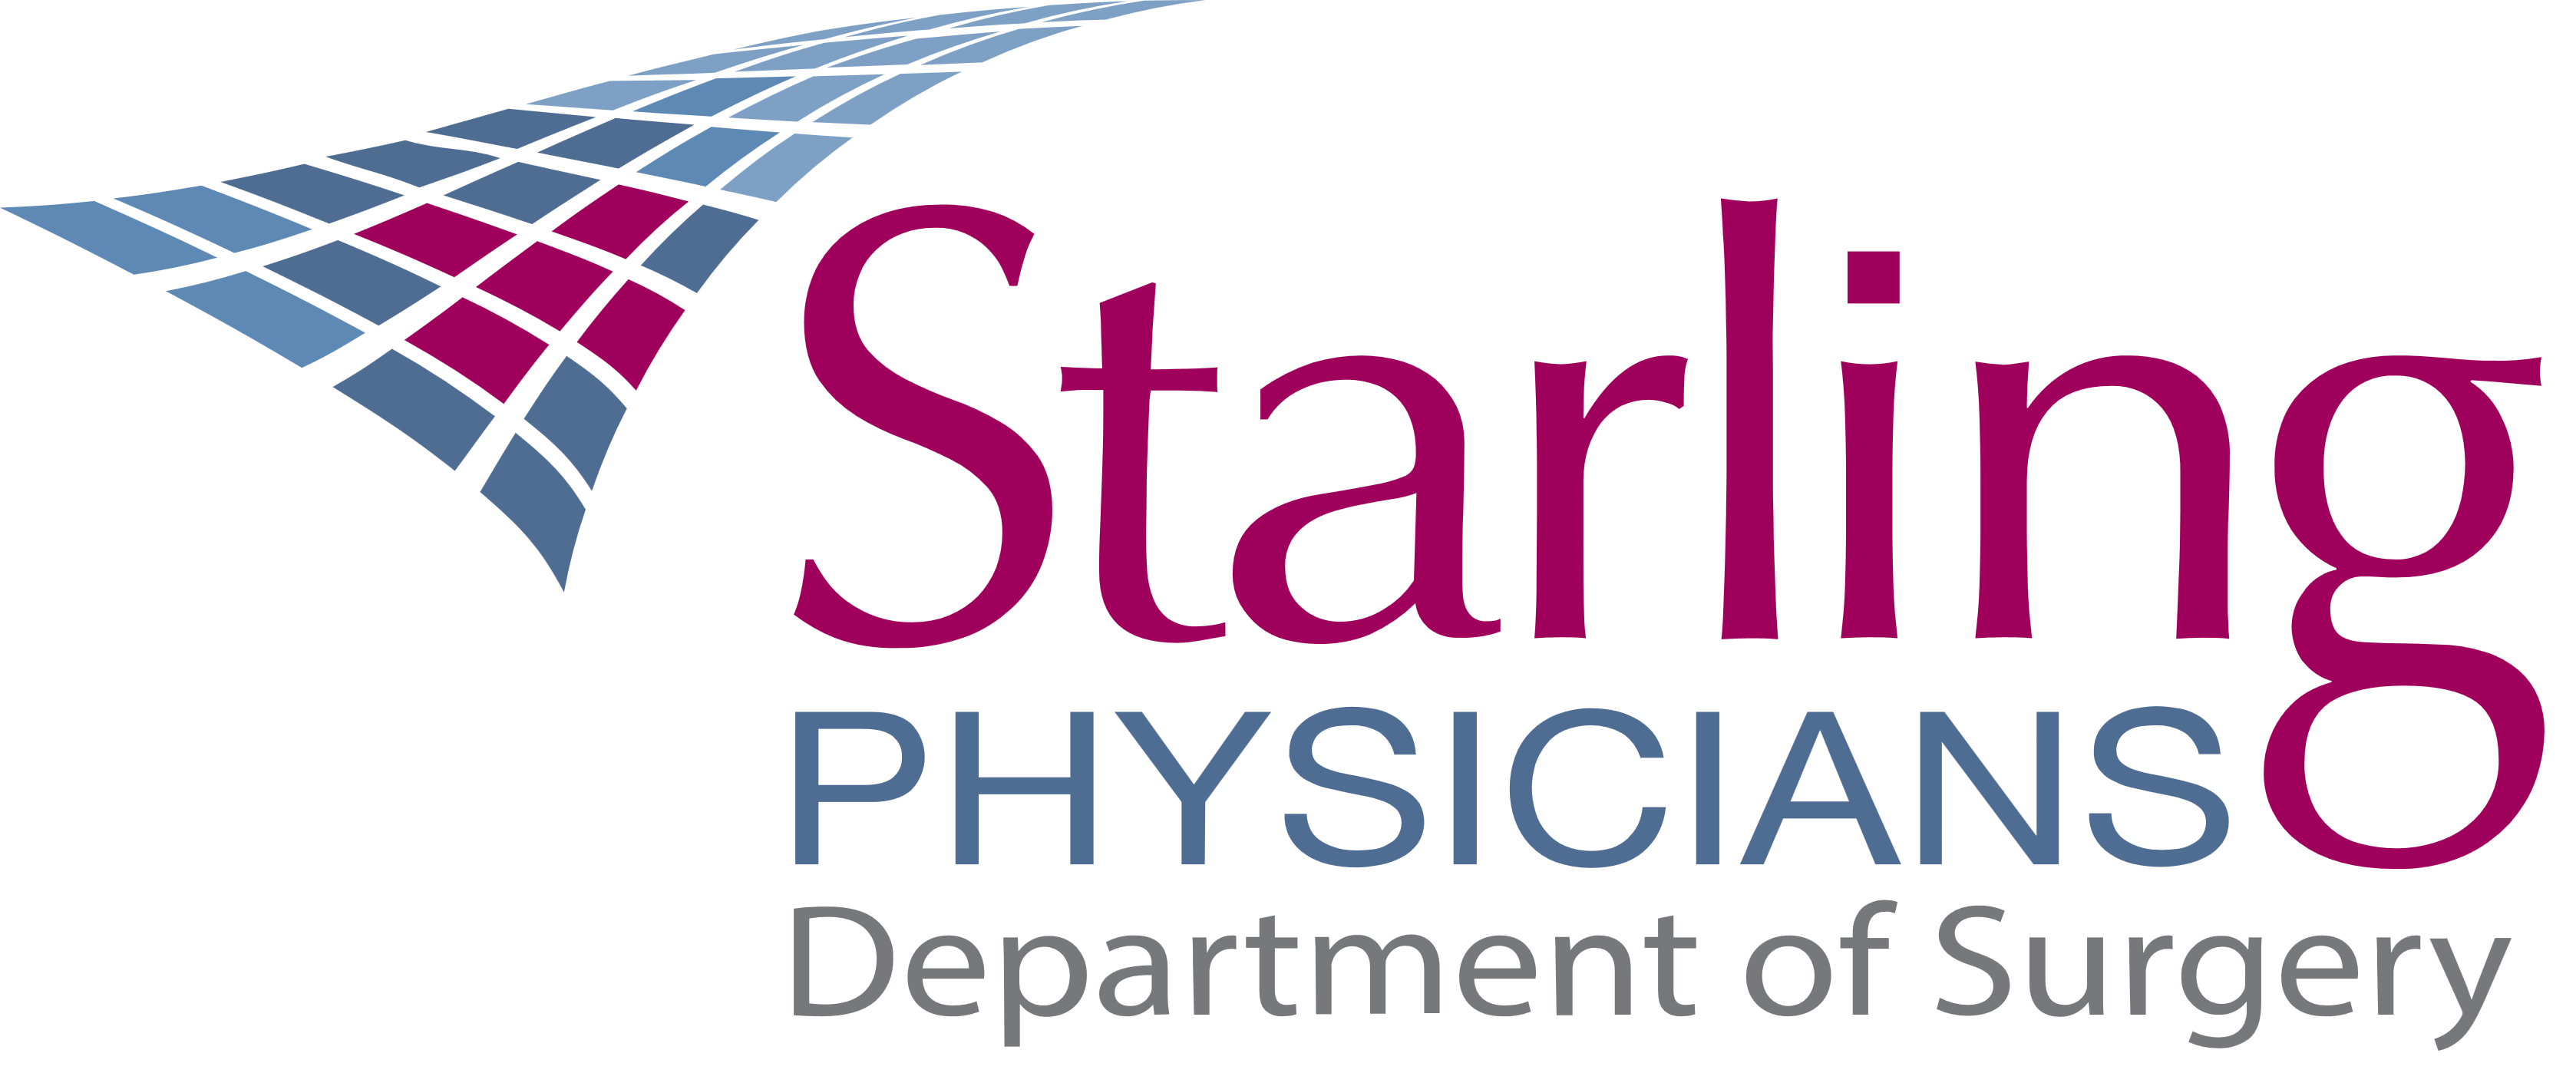 Starling Physicians Department Of Surgery Logos Download